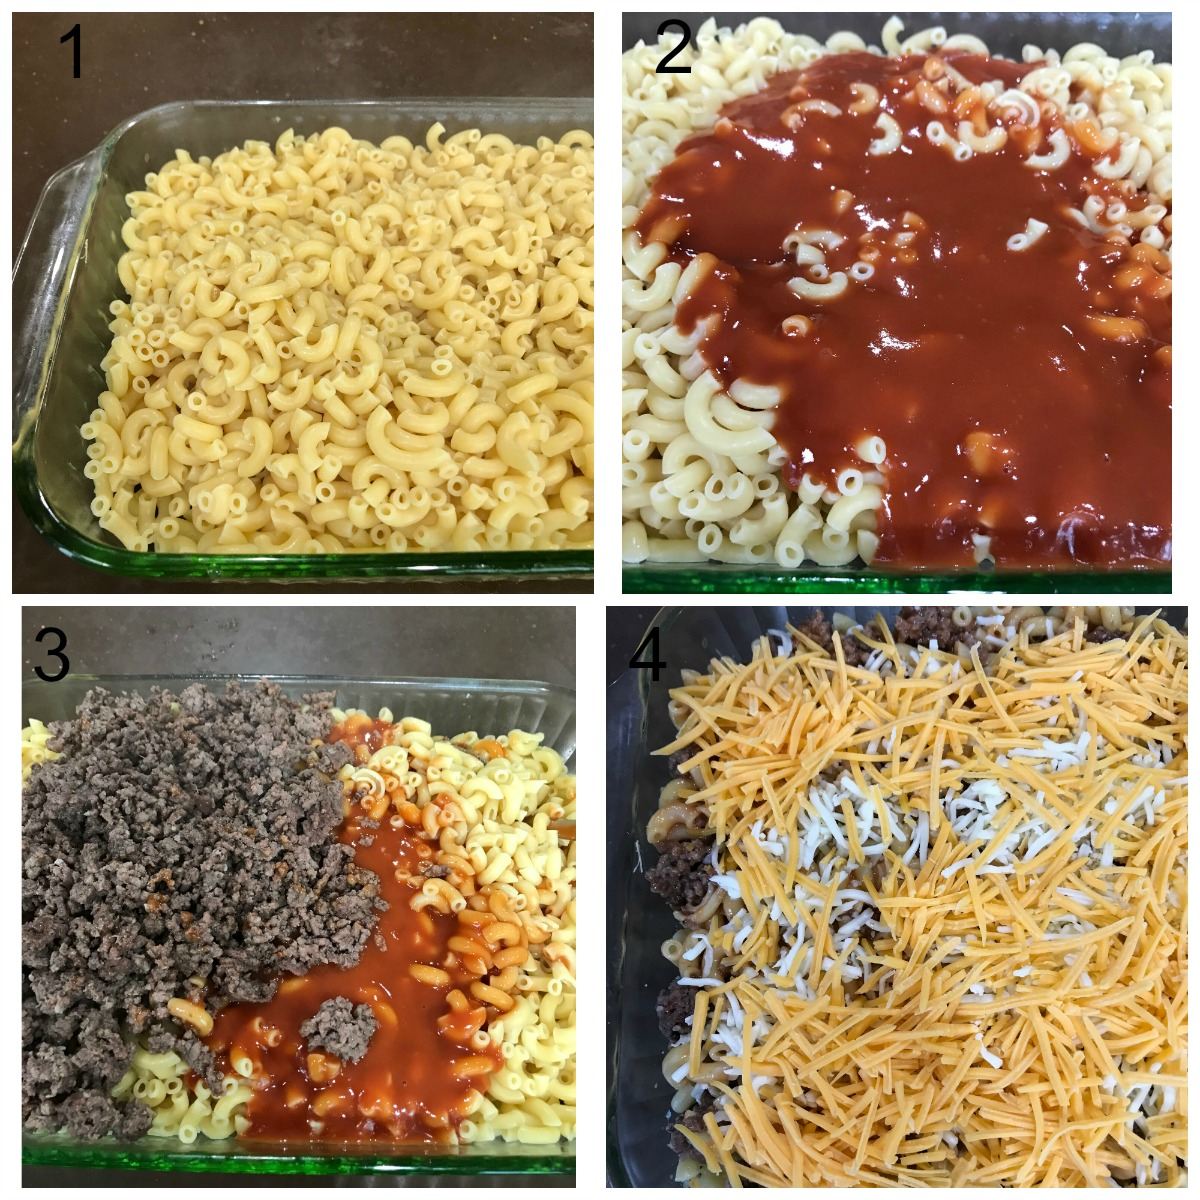 College of hamburger casserole steps to baking